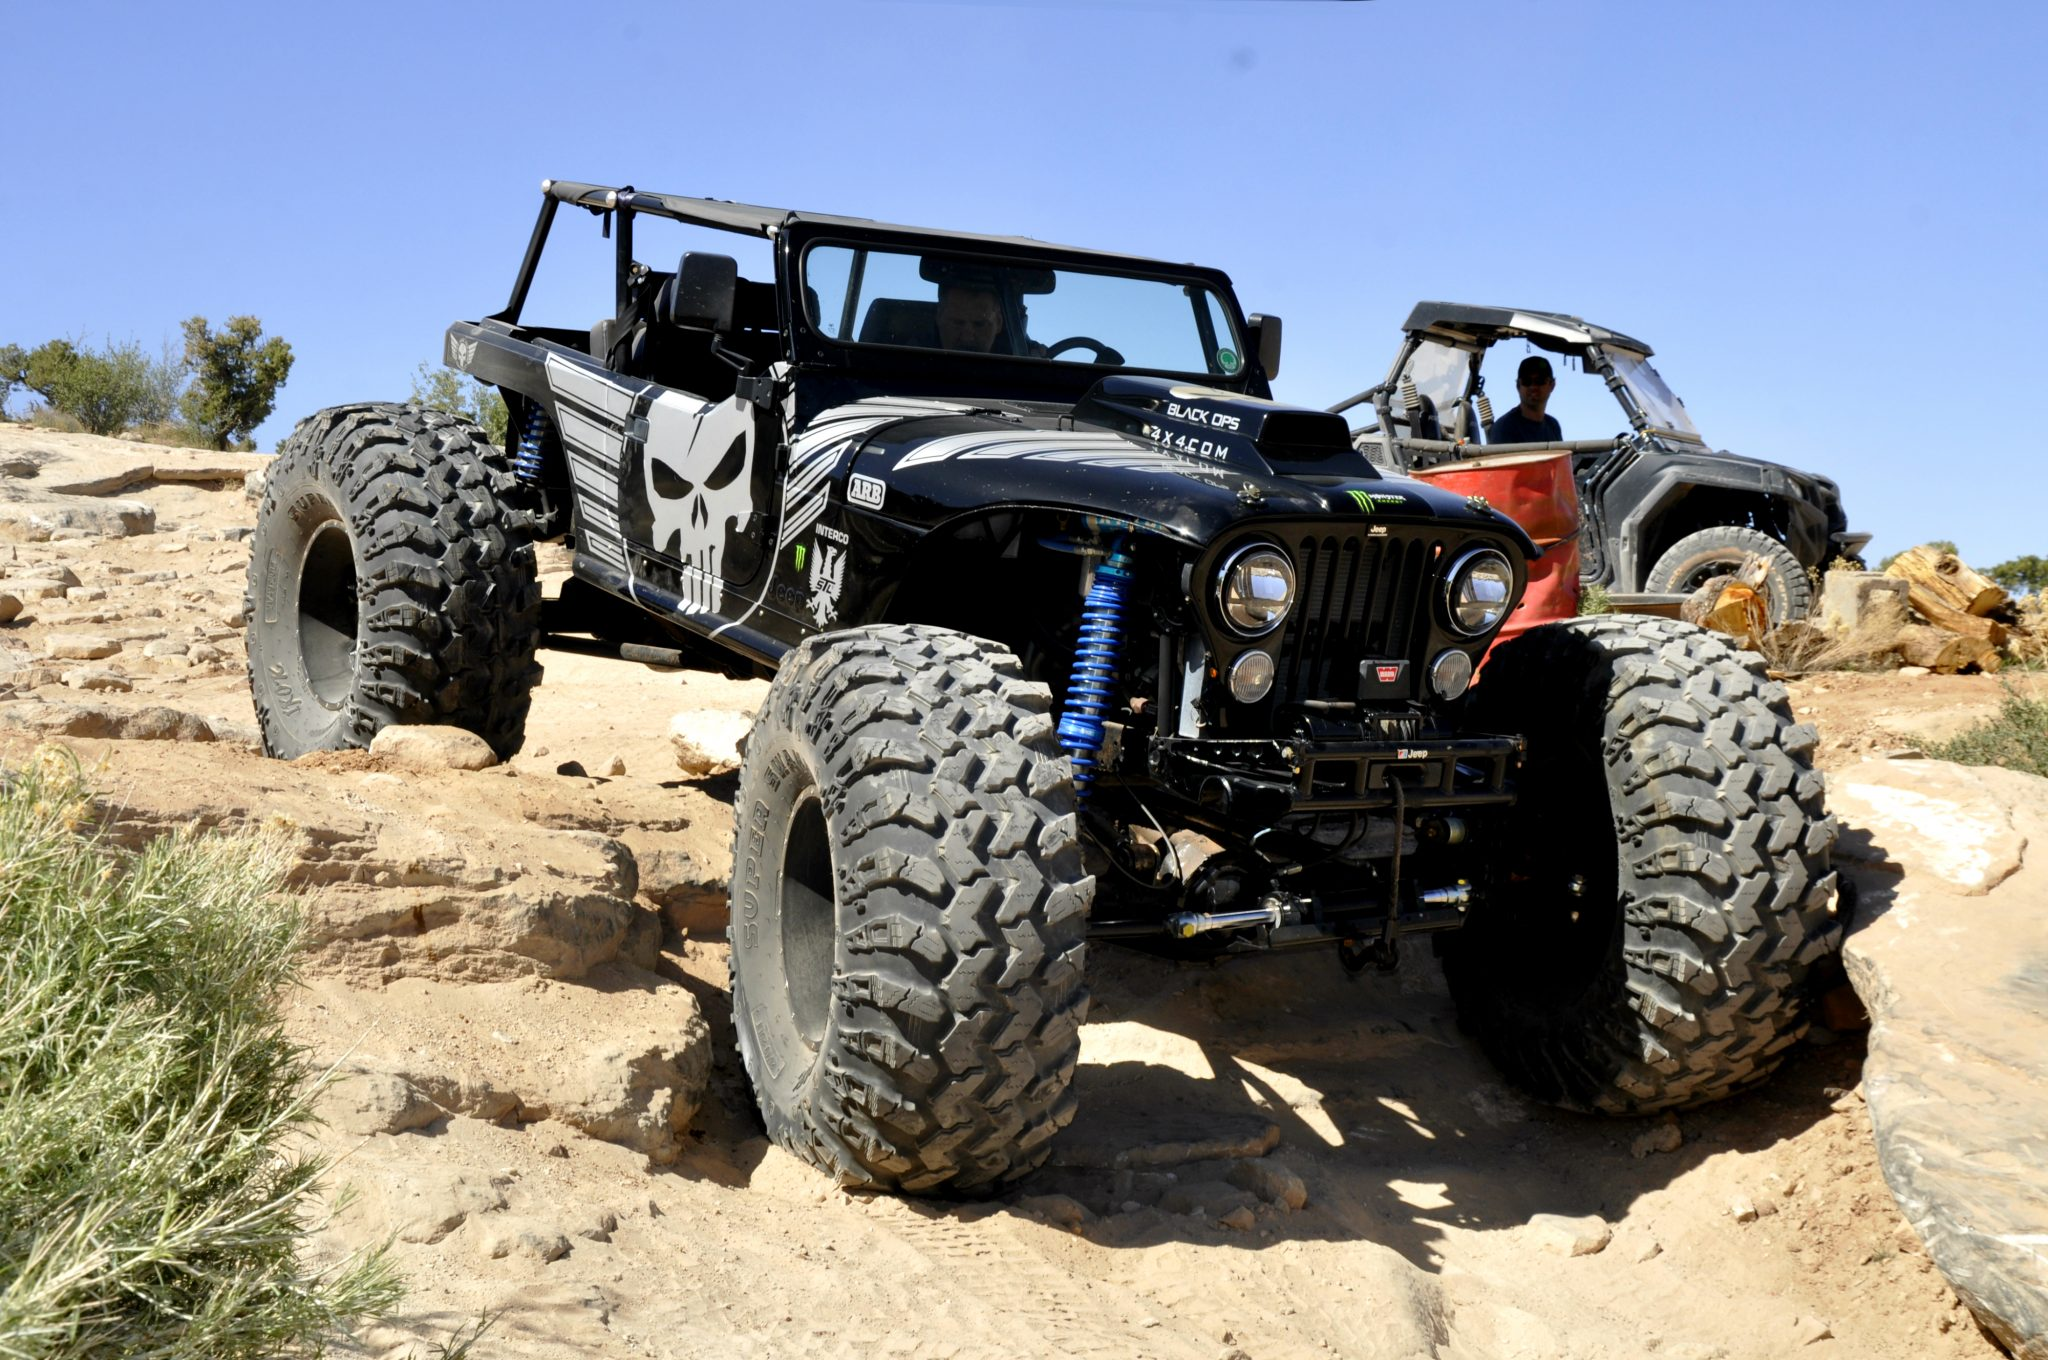 This CJ7 By Black Ops 4x4 is e Badass Jeep And it s No Trailer